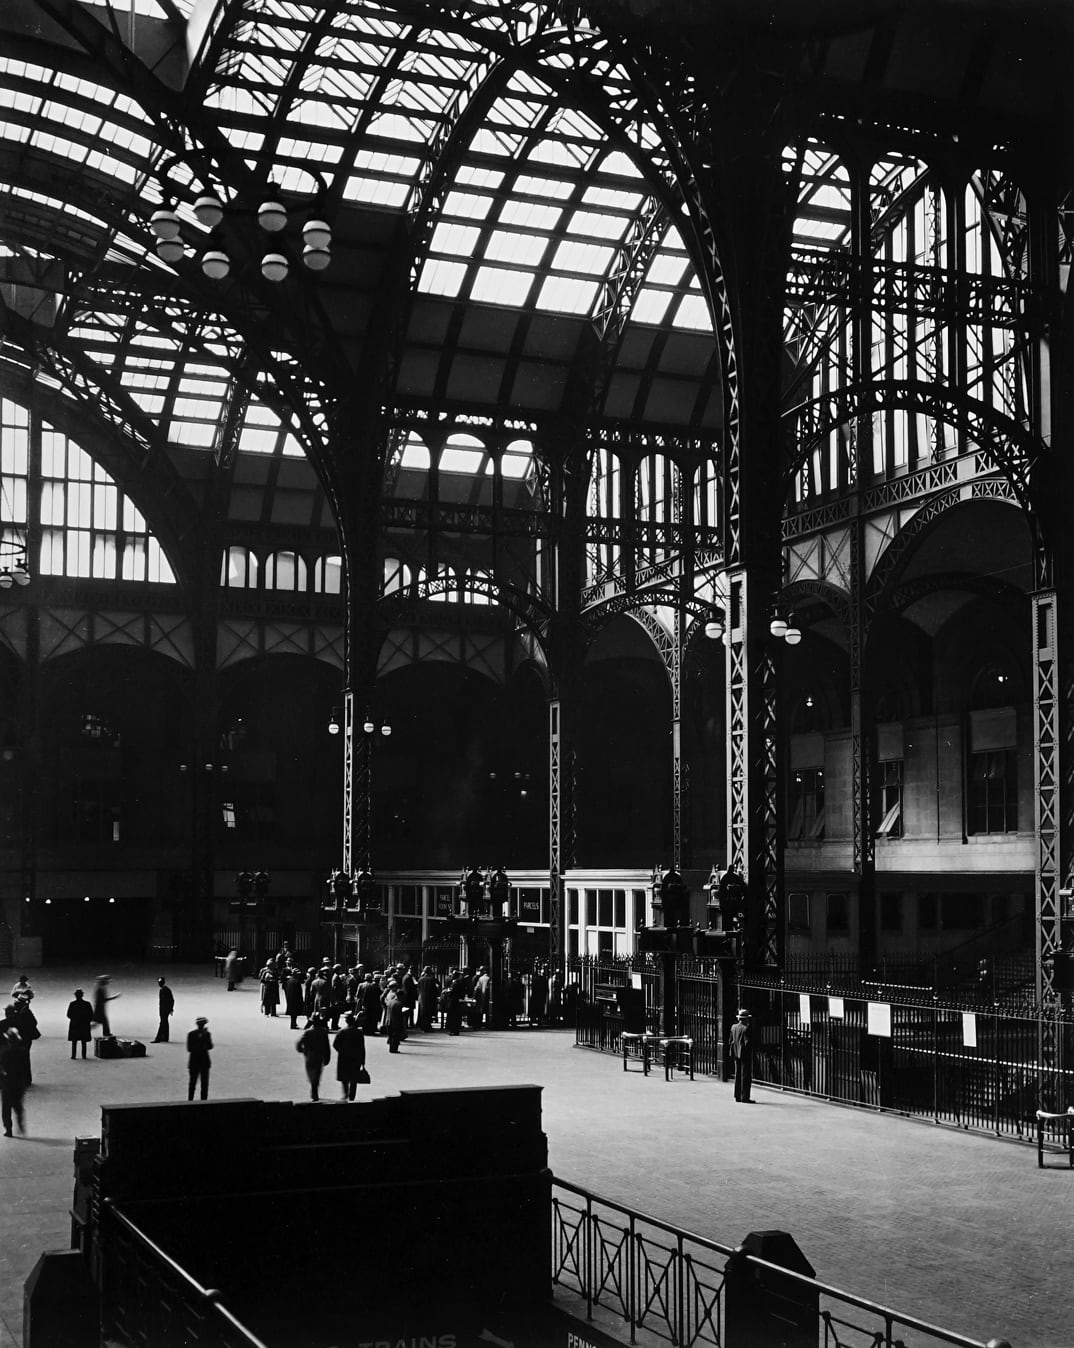 Berenice Abbott, Penn Station, New York City, 1936 (Printed 1970's)